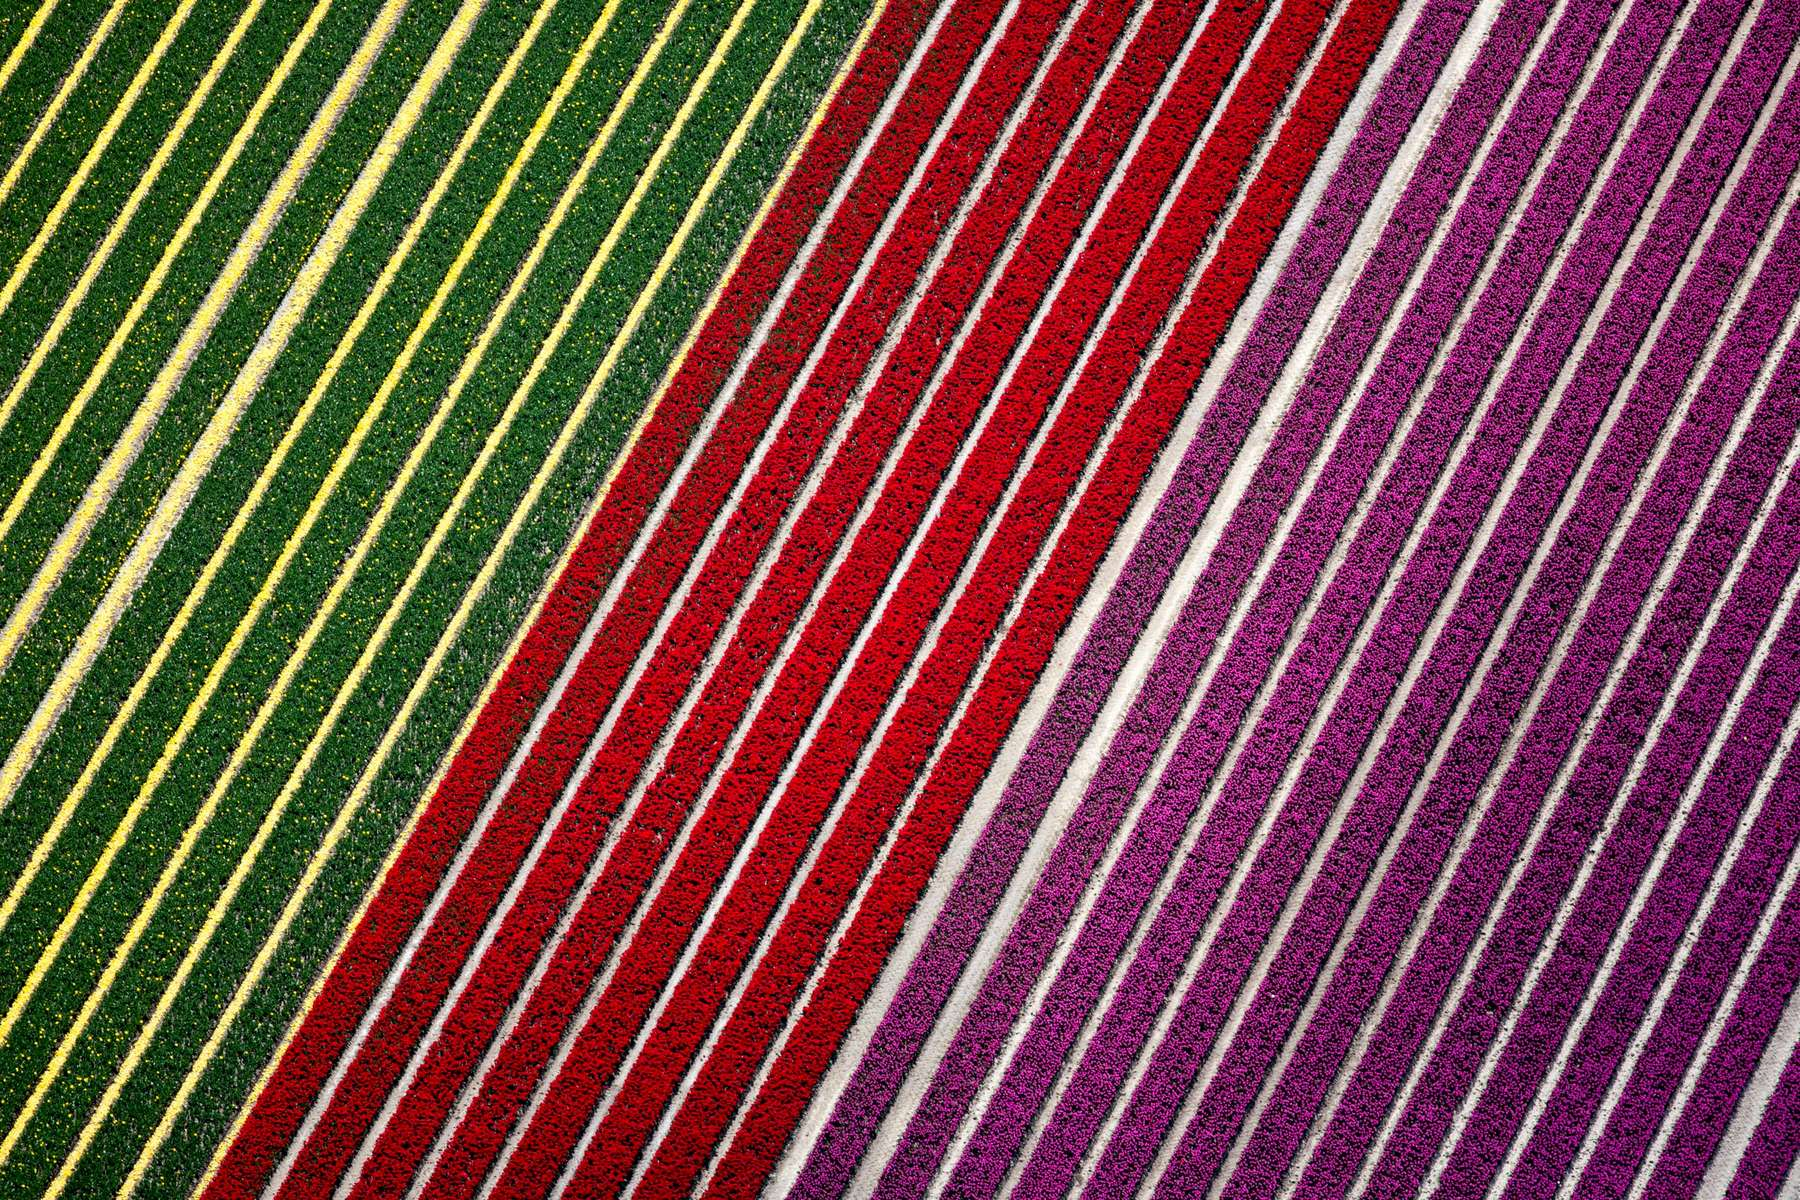 Tulip Stripes, Netherlands 2015 (150502-0520)